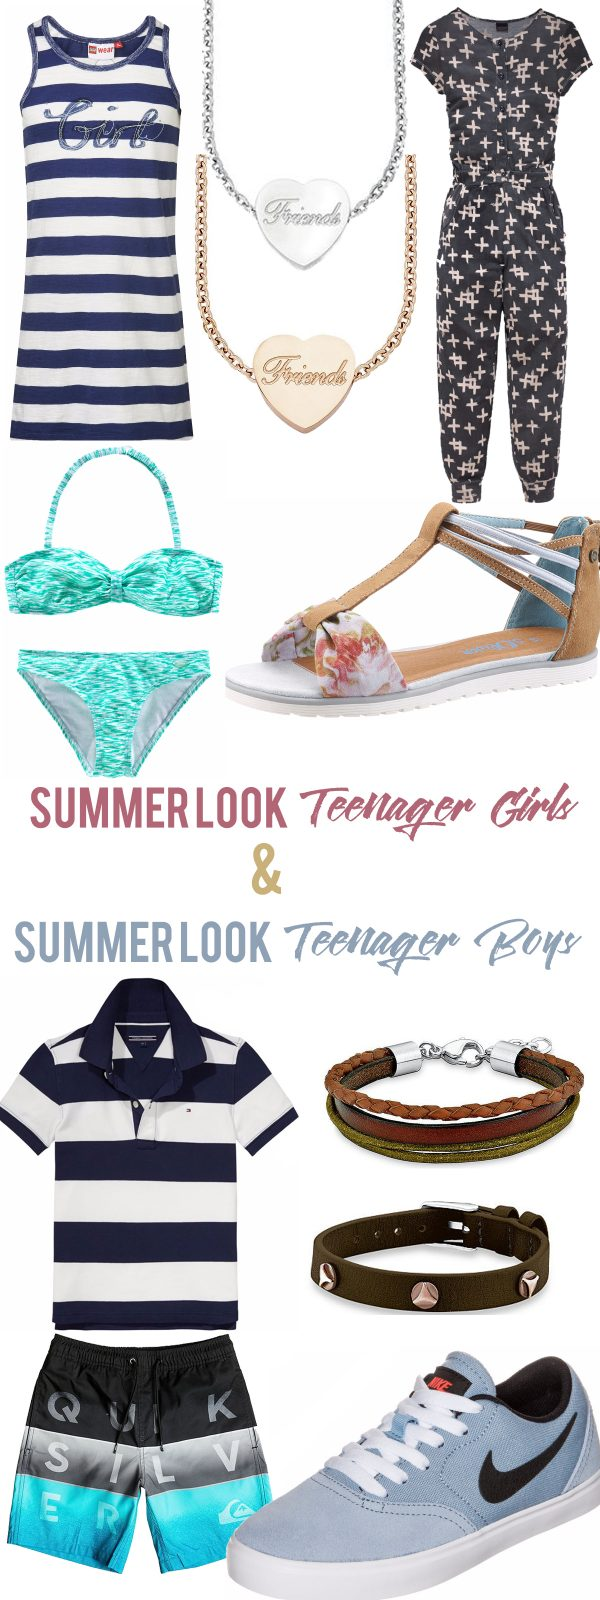 Otto Sommer Outfits Summer Look Teenager Girls & Boys